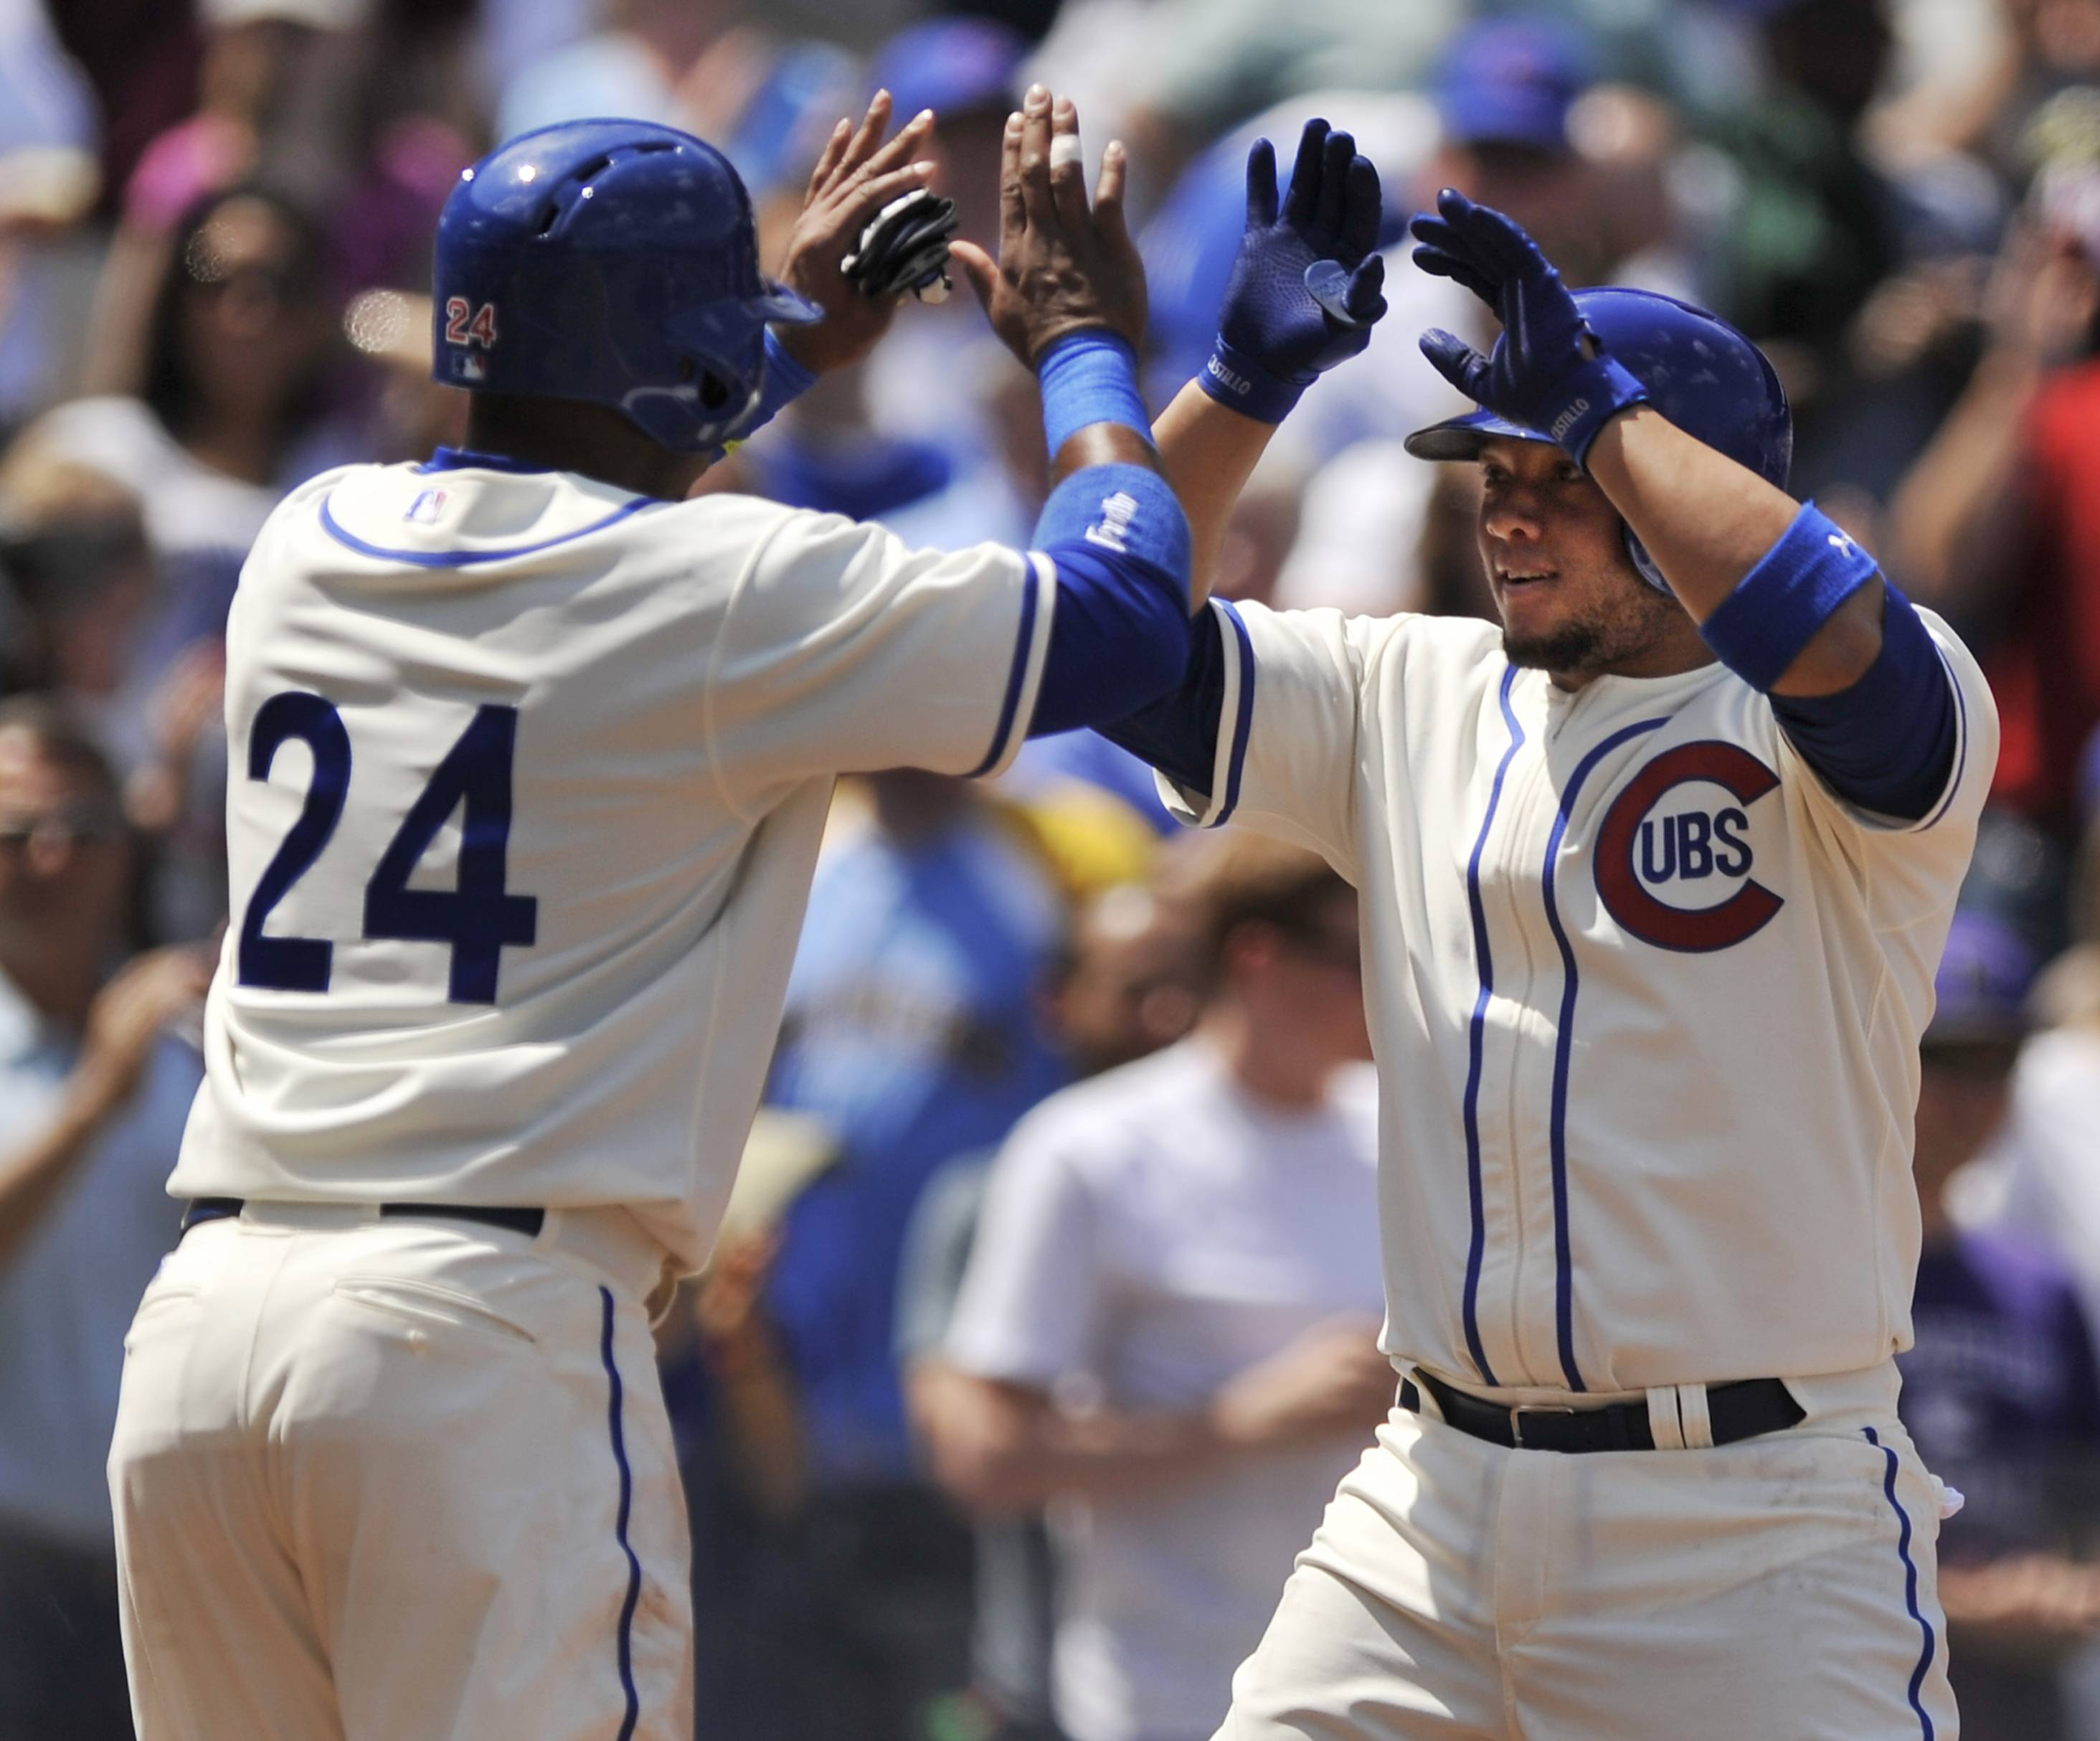 Chicago Cubs' Welington Castillo right, celebrates with teammate Luis Valbuena (24) at home plate after hitting a two-run homer during the second inning of a baseball game against the Milwaukee Brewers in Chicago, Sunday, May 18, 2014.